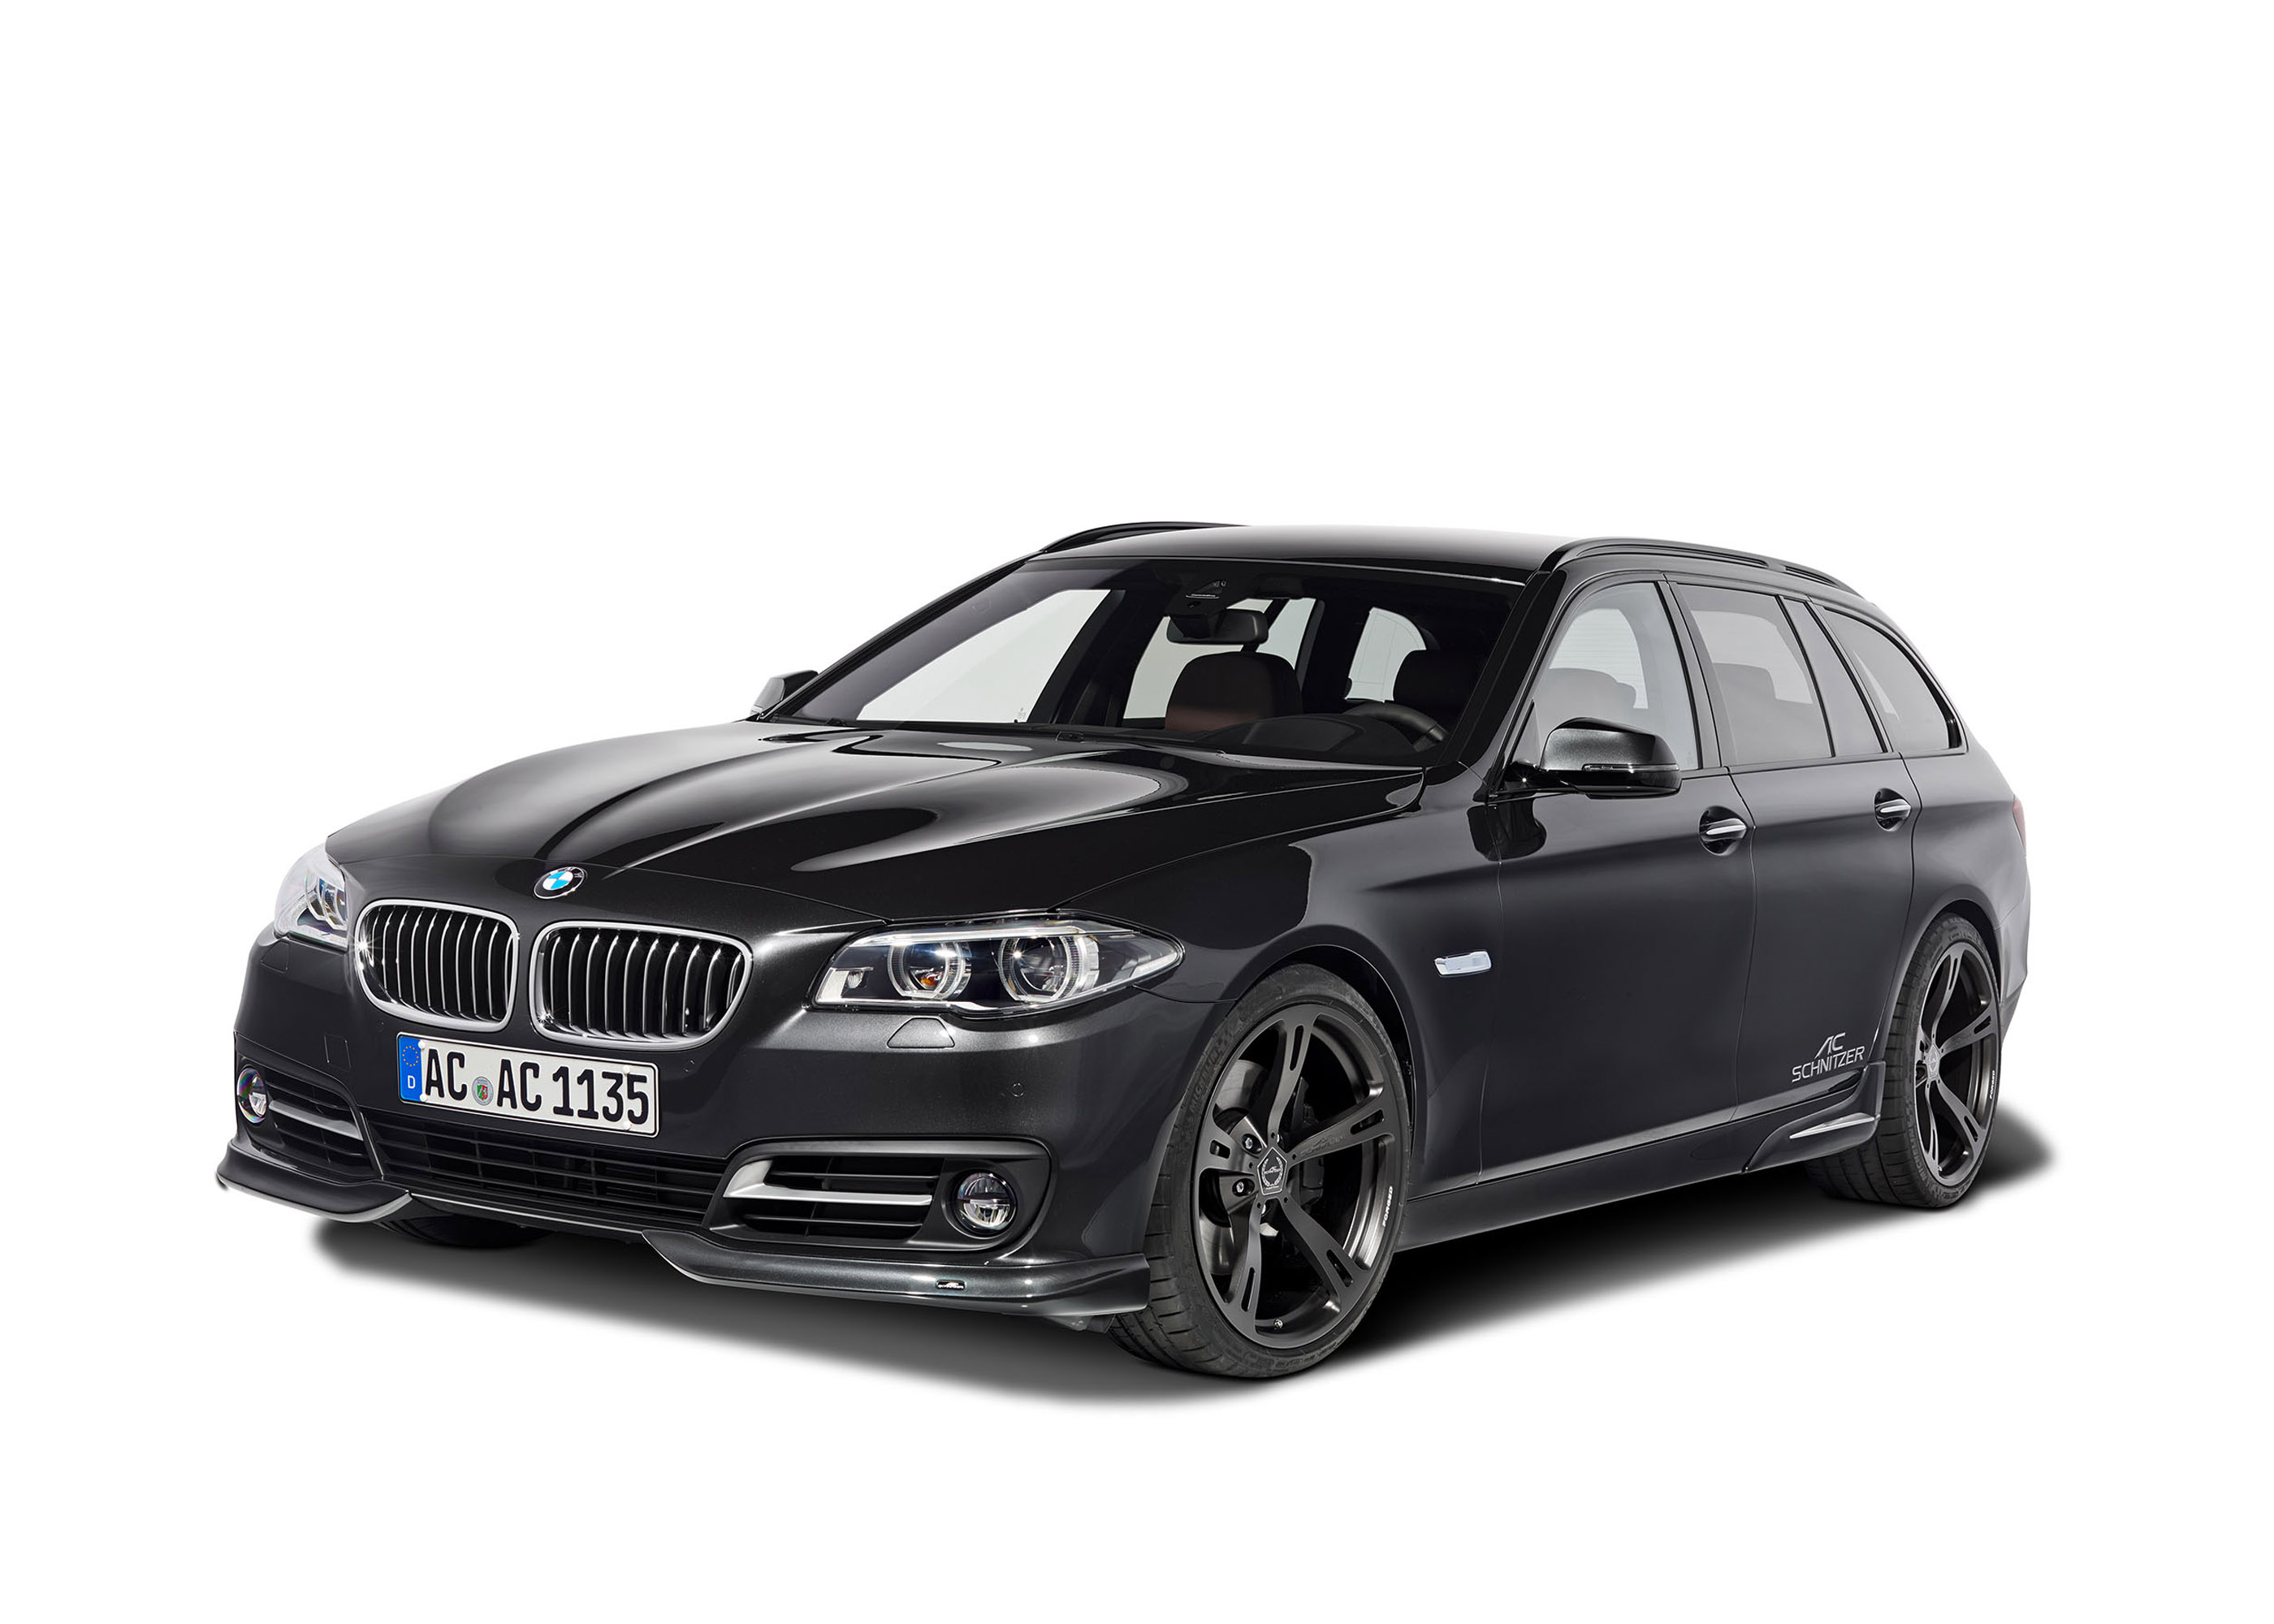 ac schnitzer bmw 5 series touring lci debuts at essen motor show. Black Bedroom Furniture Sets. Home Design Ideas